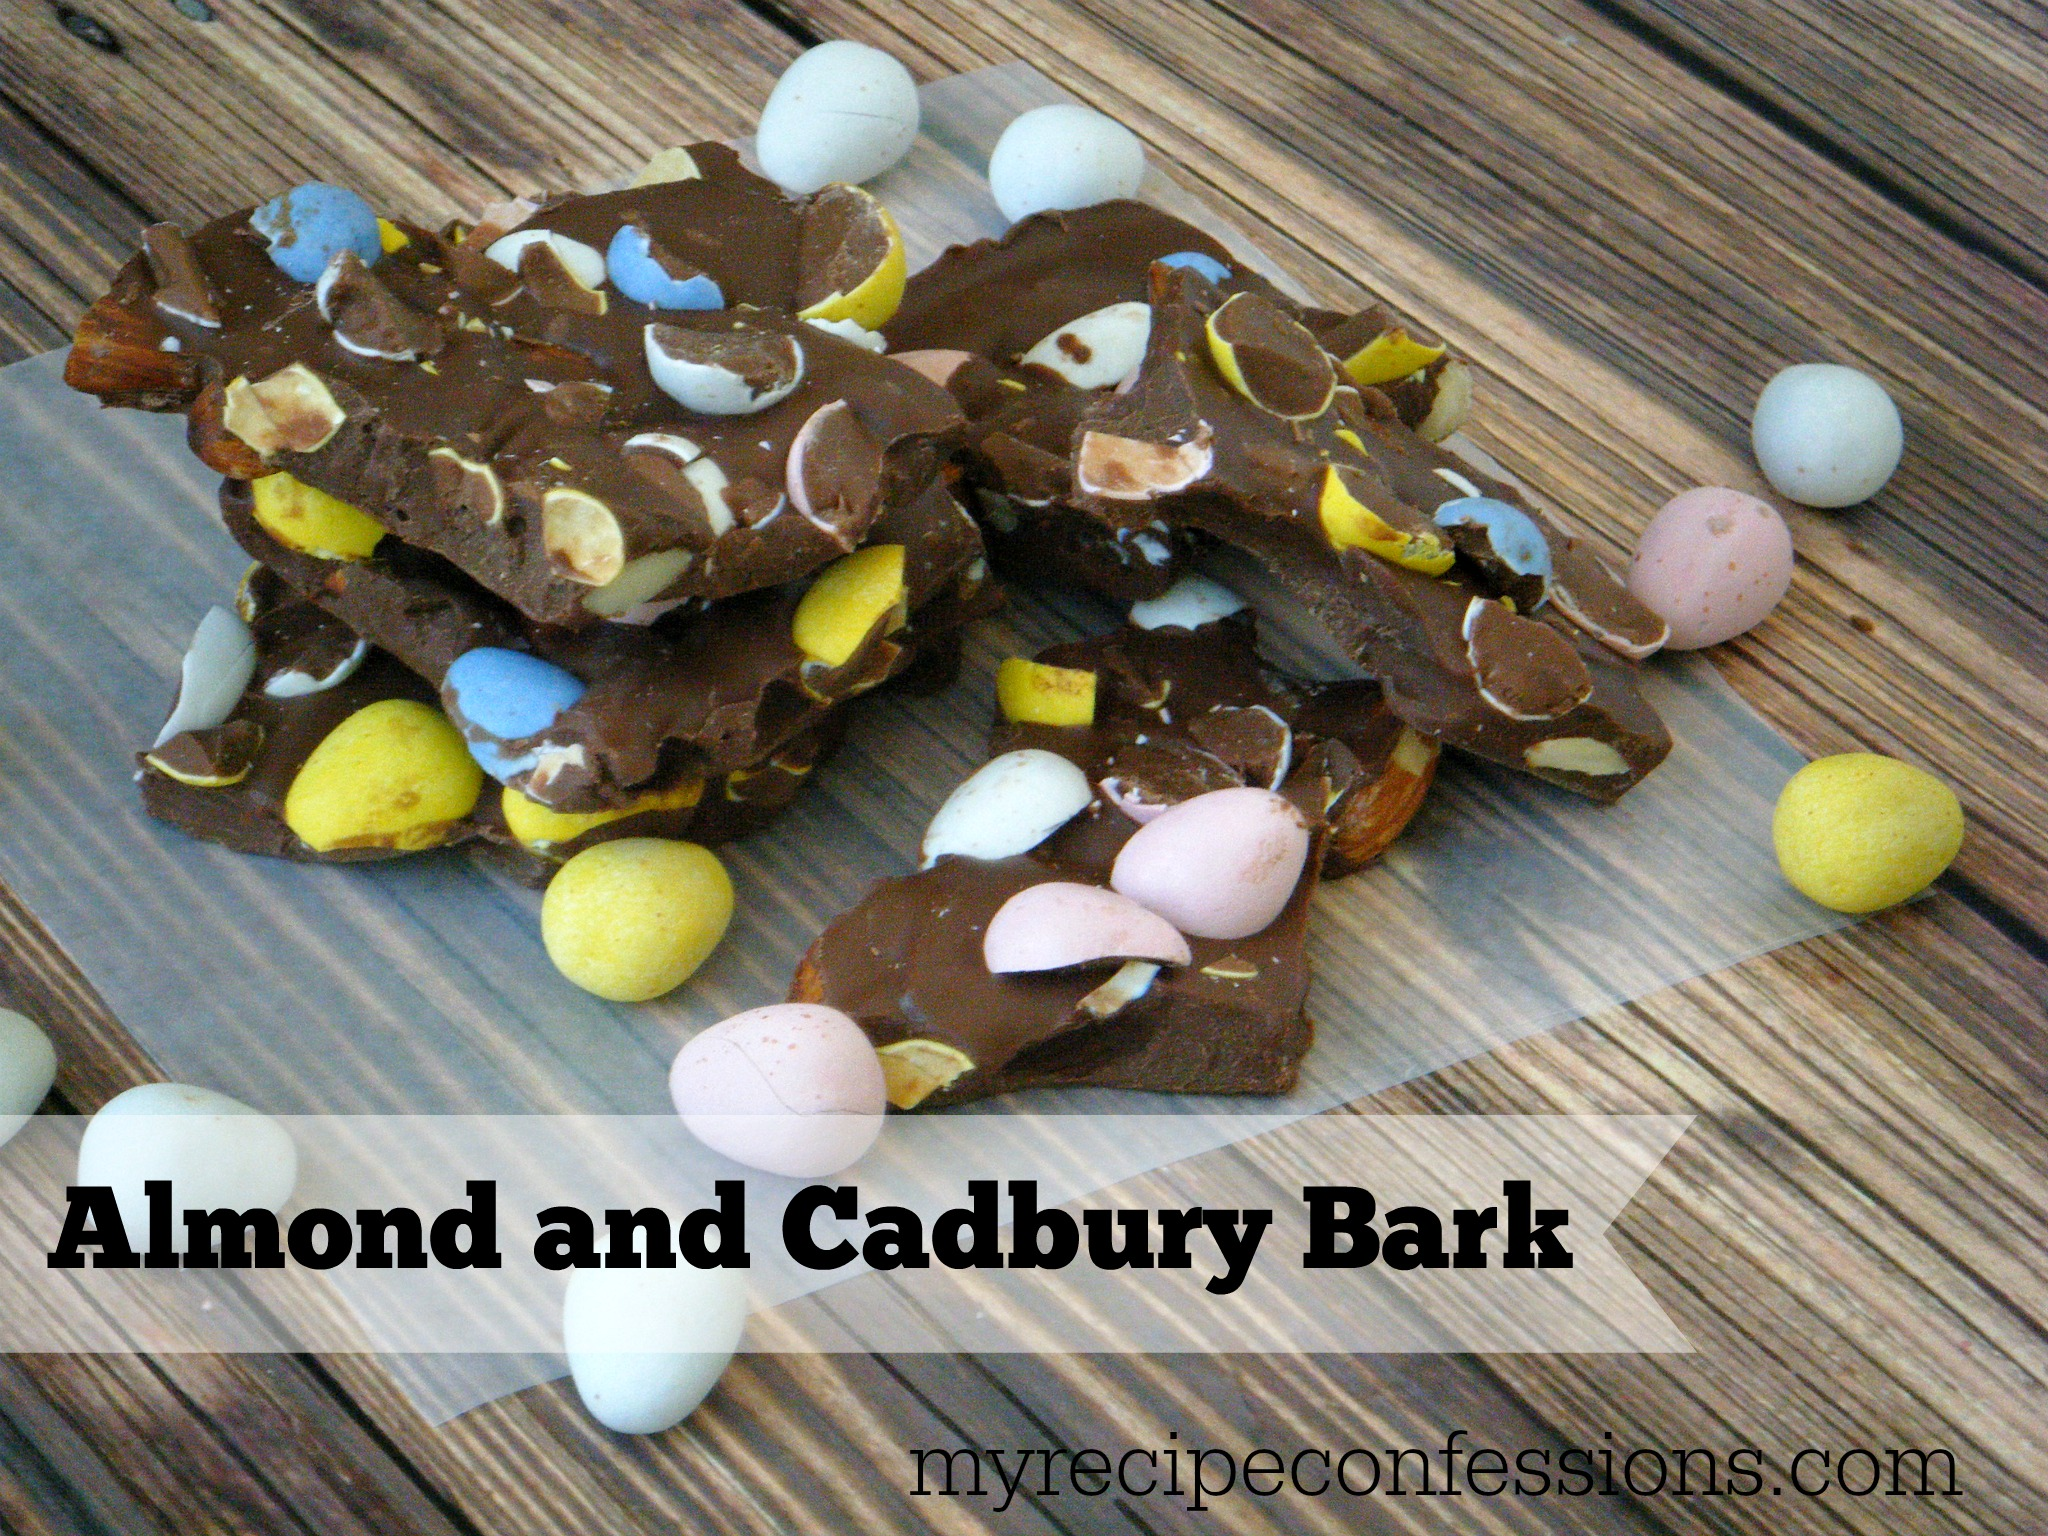 Almond and Cadbury Bark. Who can resist Cadbury eggs and almond held together by milk chocolate? I know I can't. This is one of the easiest recipes you will ever make. I love easy desserts, and it doesn't get any simpler than this.